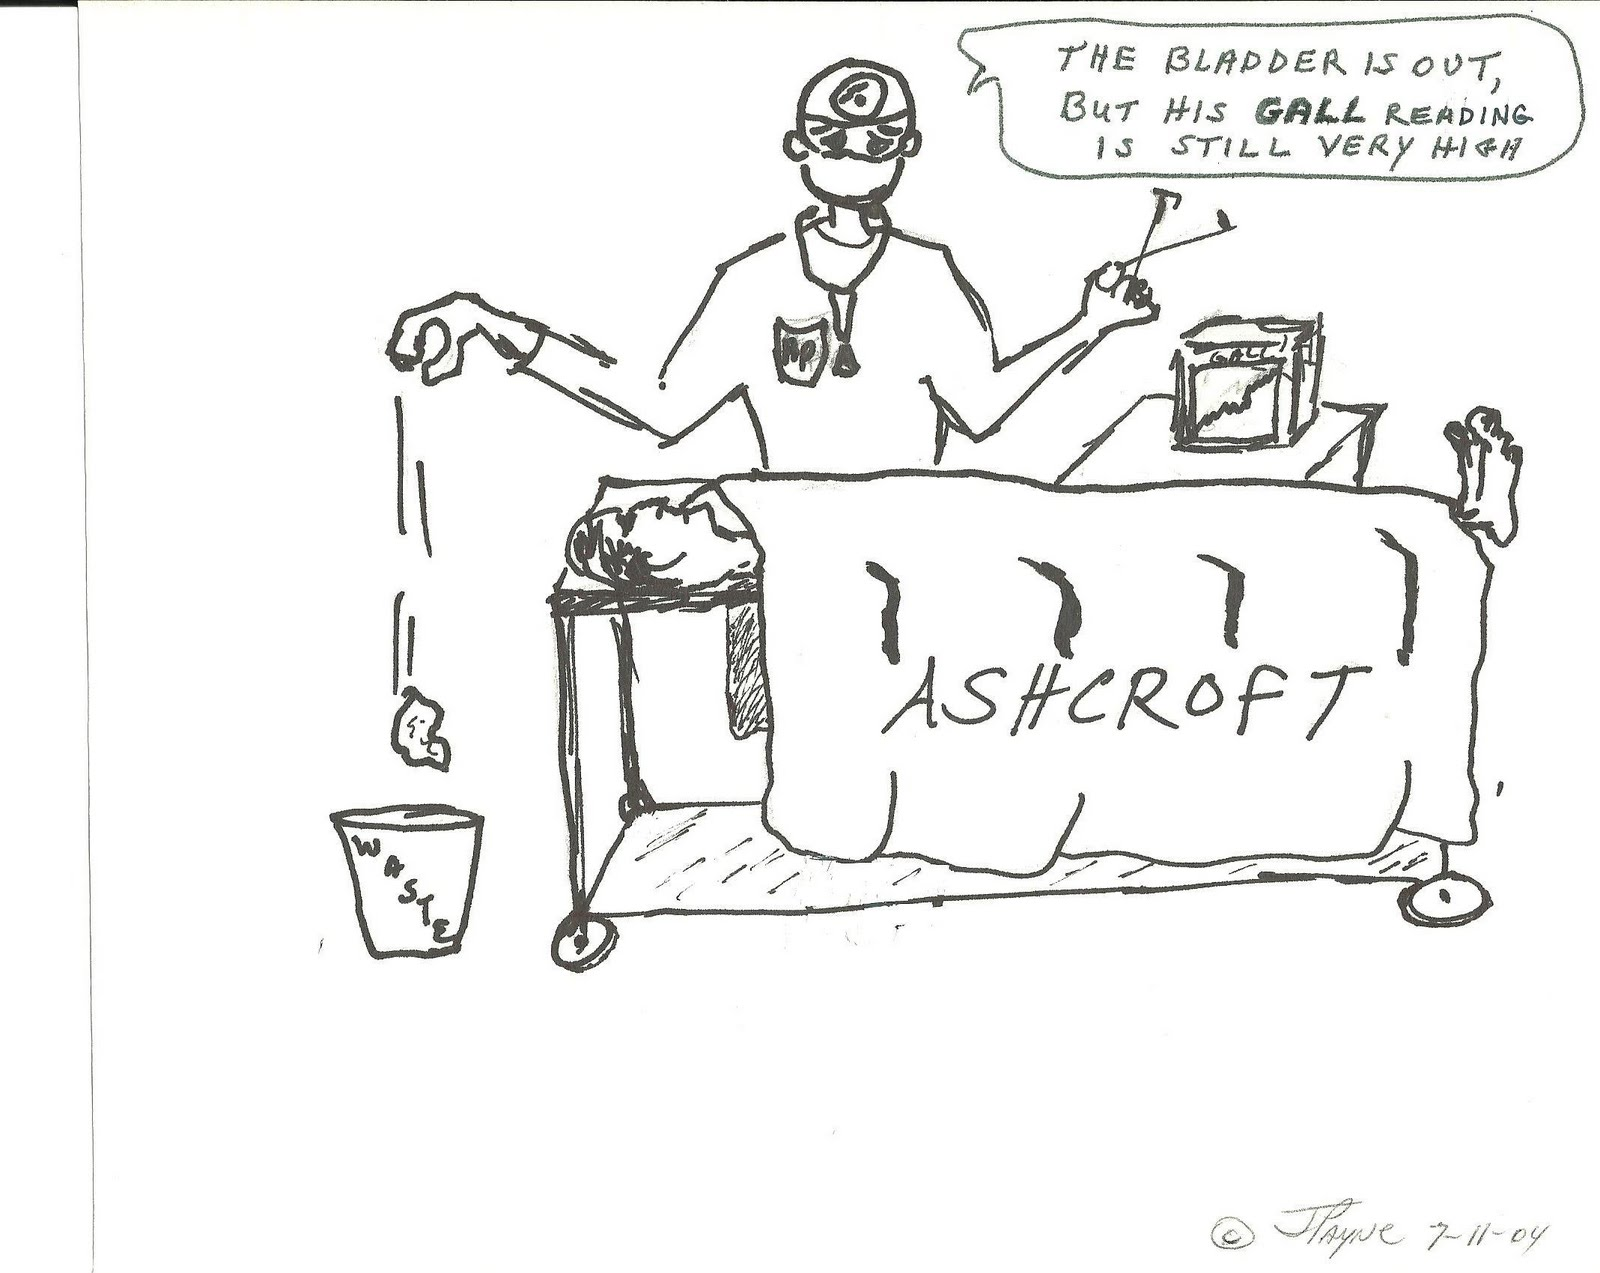 Surgical cartoons surgical cartoon funny surgical picture surgical - Gall Reading